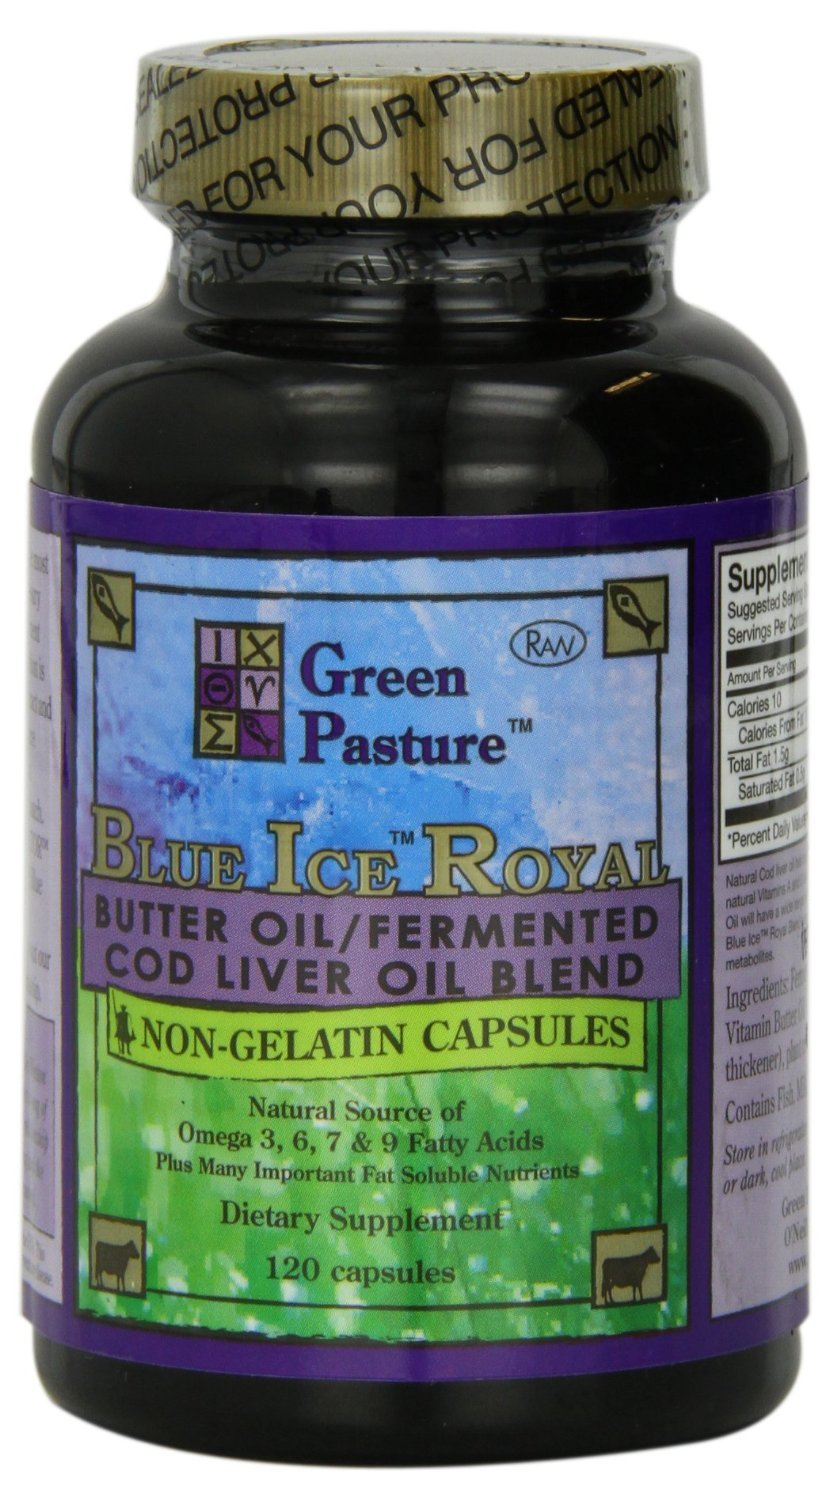 Blue Ice Royal Butter Oil / Fermented Cod Liver Oil Blend - 120 Capsules by Green Pastures